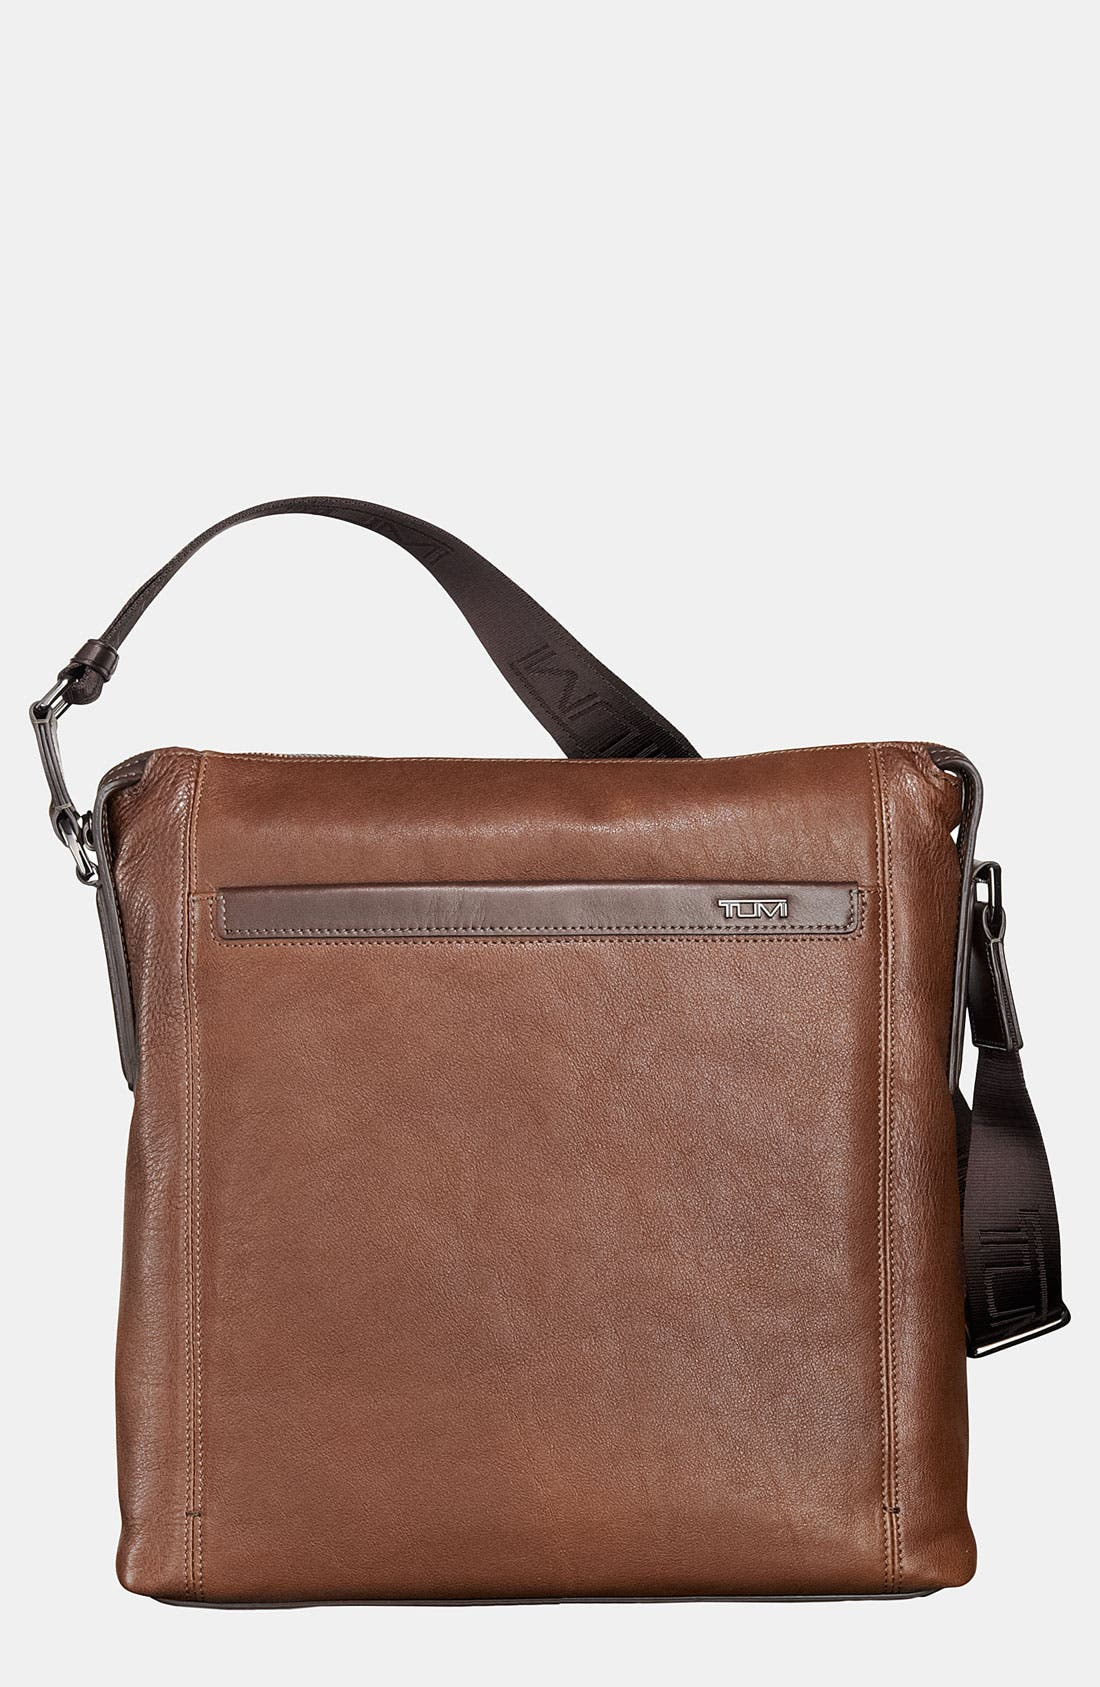 Main Image - Tumi 'Centro - Venezia' Crossbody Bag